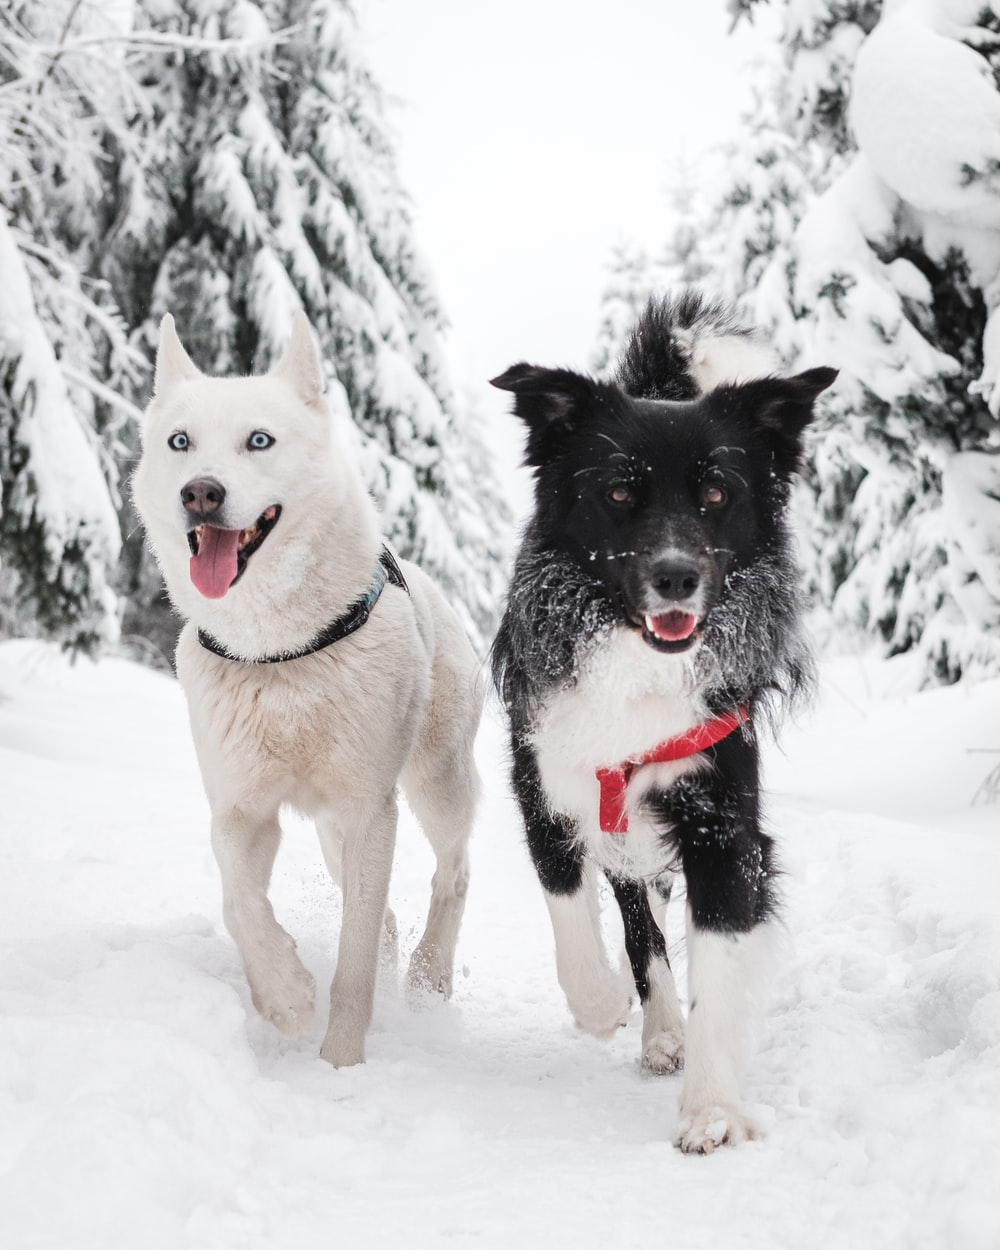 white and black dogs on snow covered ground during daytime